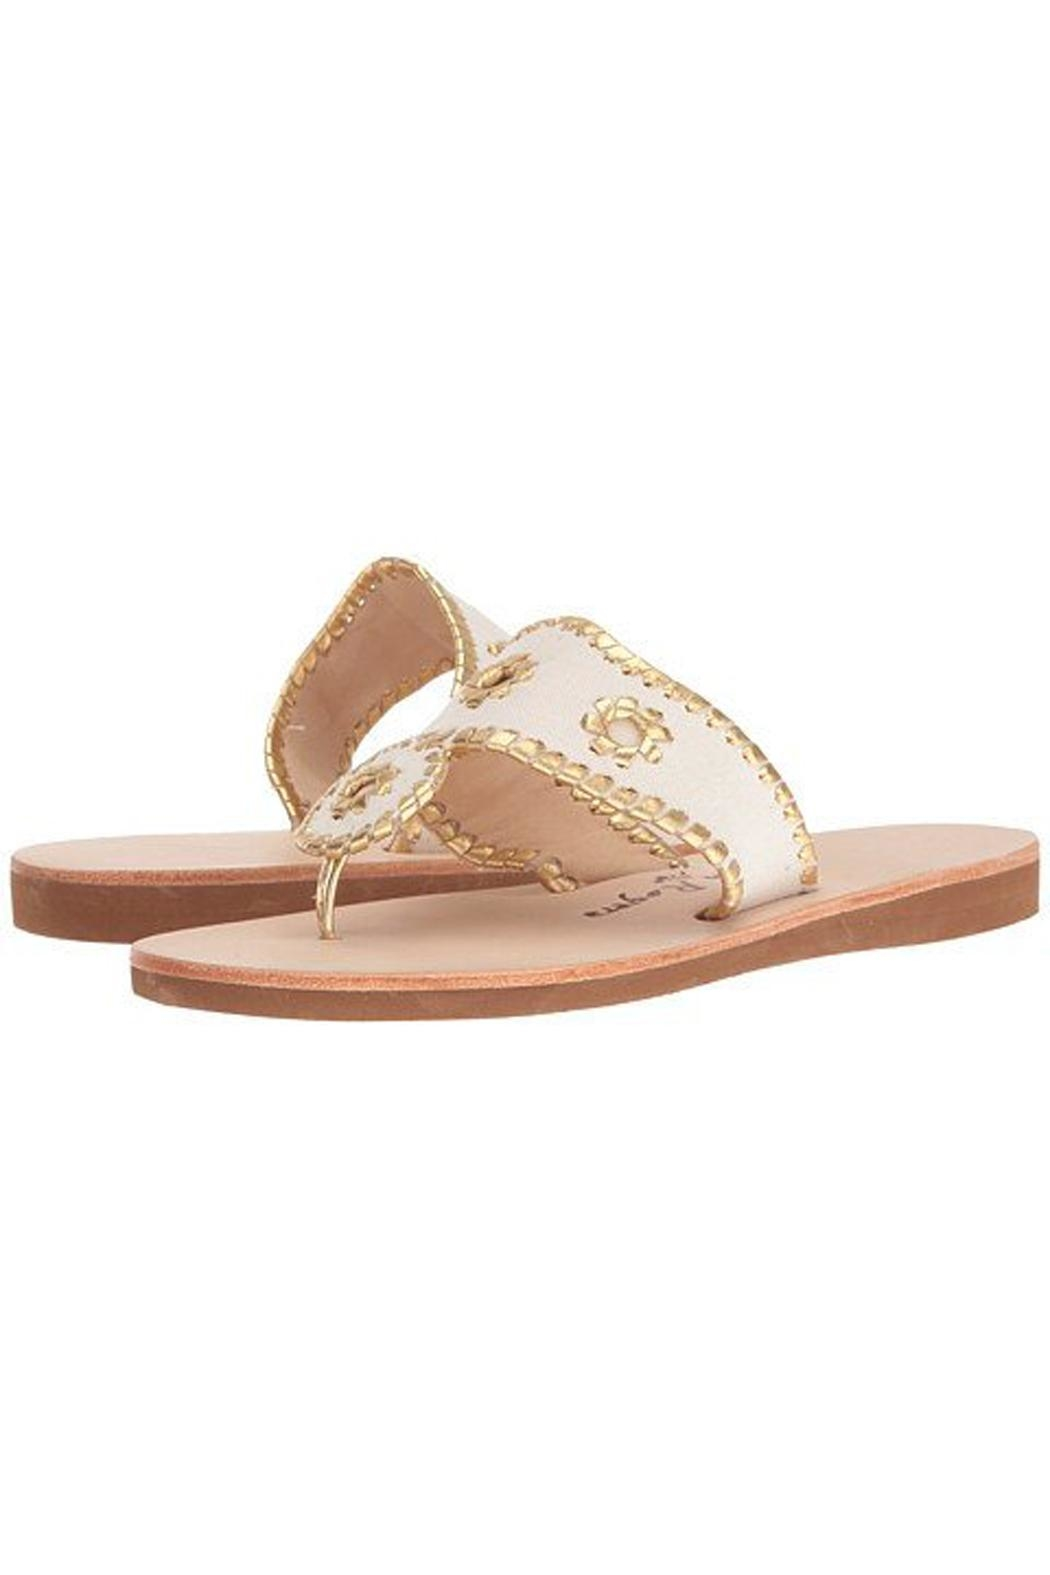 Jack Rogers Summer Boating Sandals - Front Cropped Image